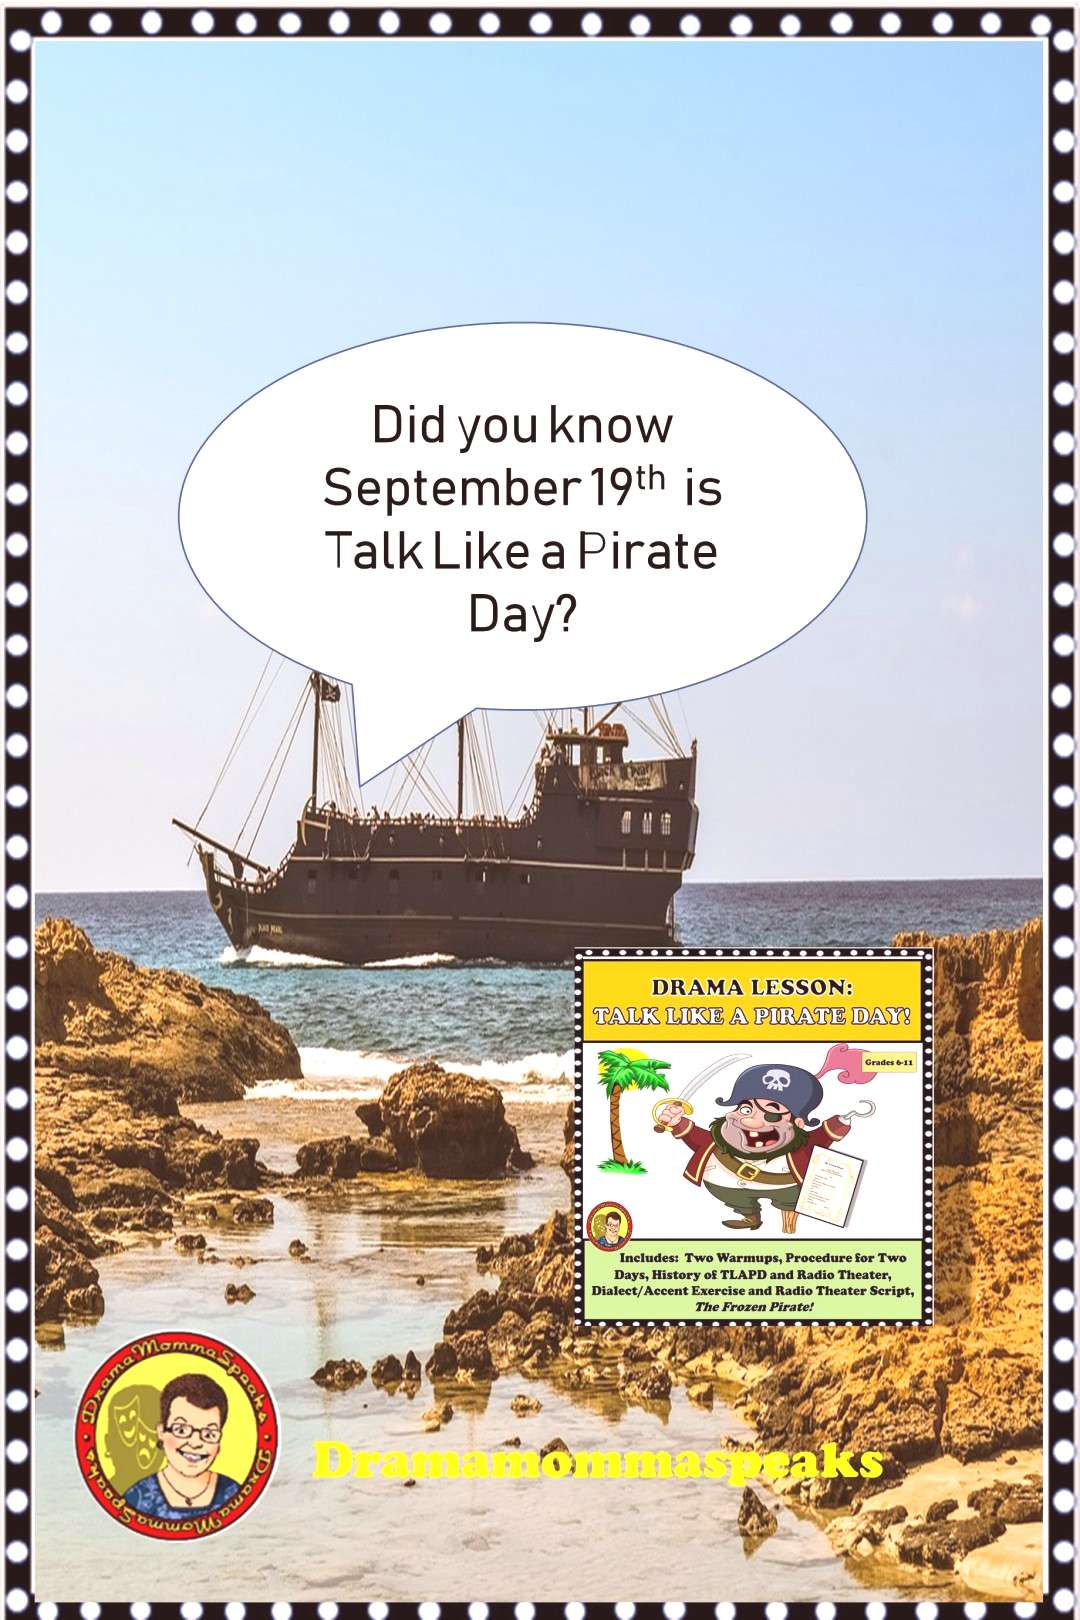 The Frozen Pirate Radio Play Argh......Talk like a Pirate Day lesson? But of course! I teach thea